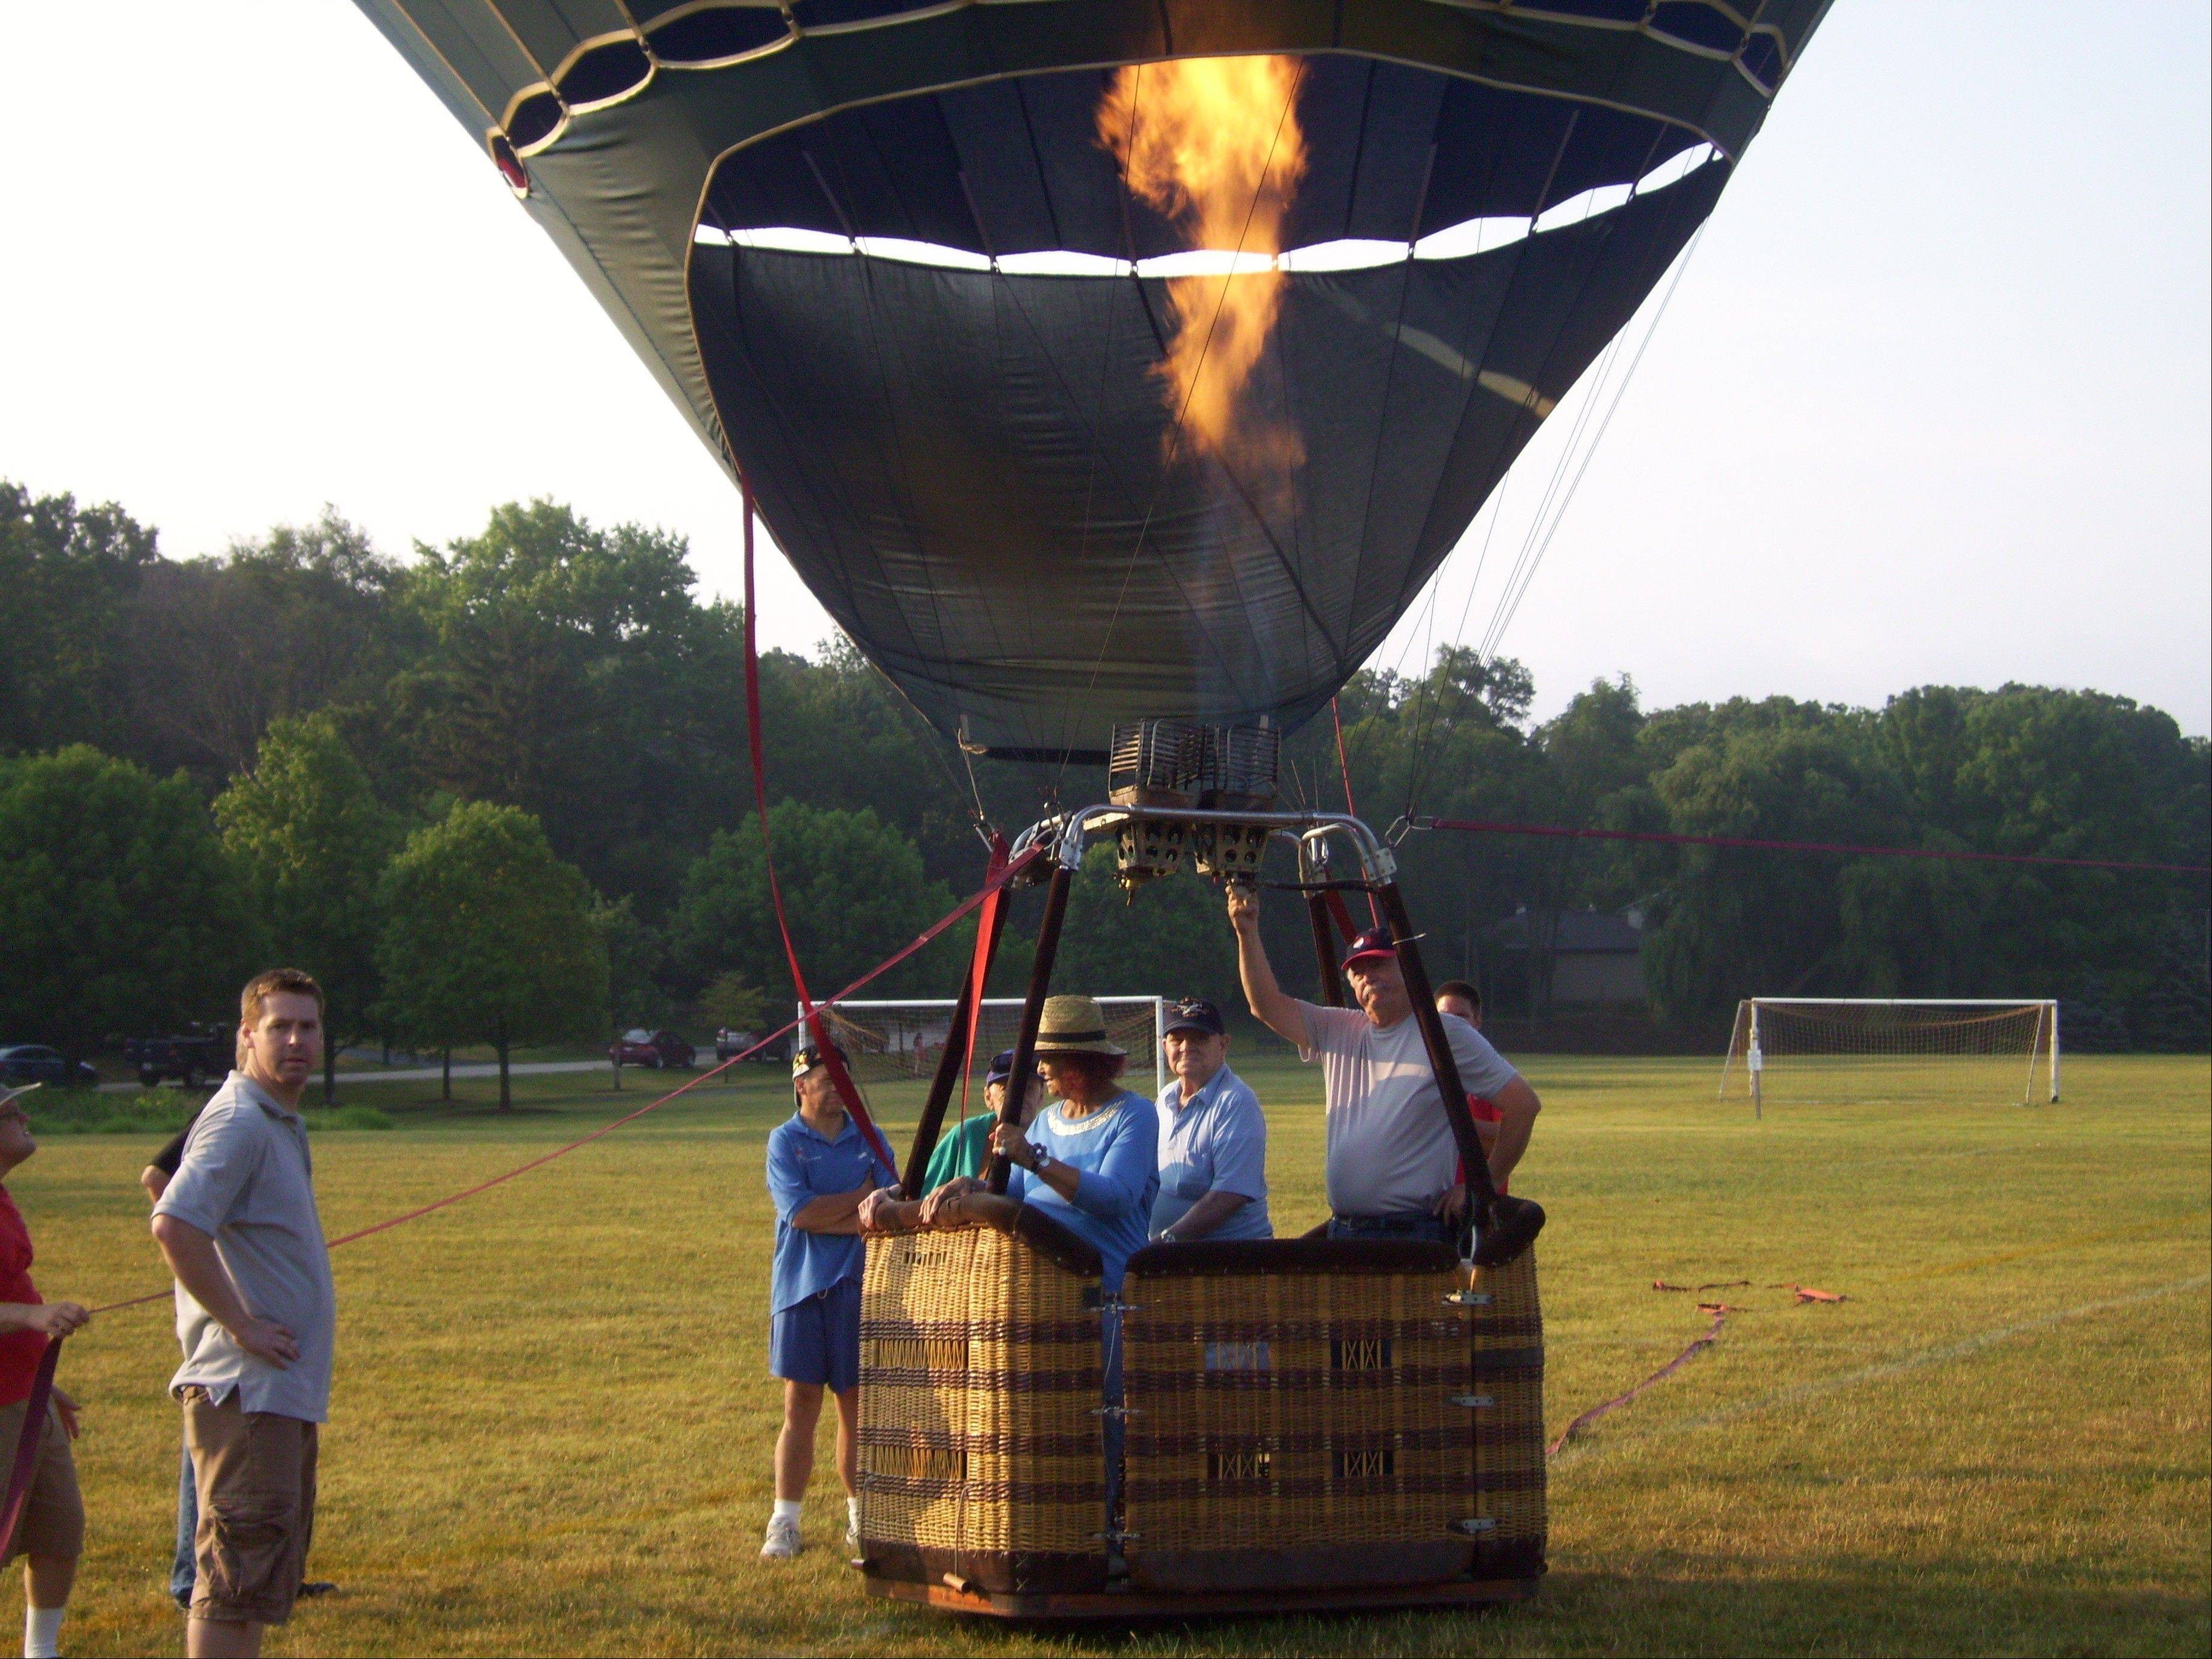 Alexian Village of Elk Grove Village will occasionally treat its residents to a hot-air balloon ride with A Great American Balloon Co.